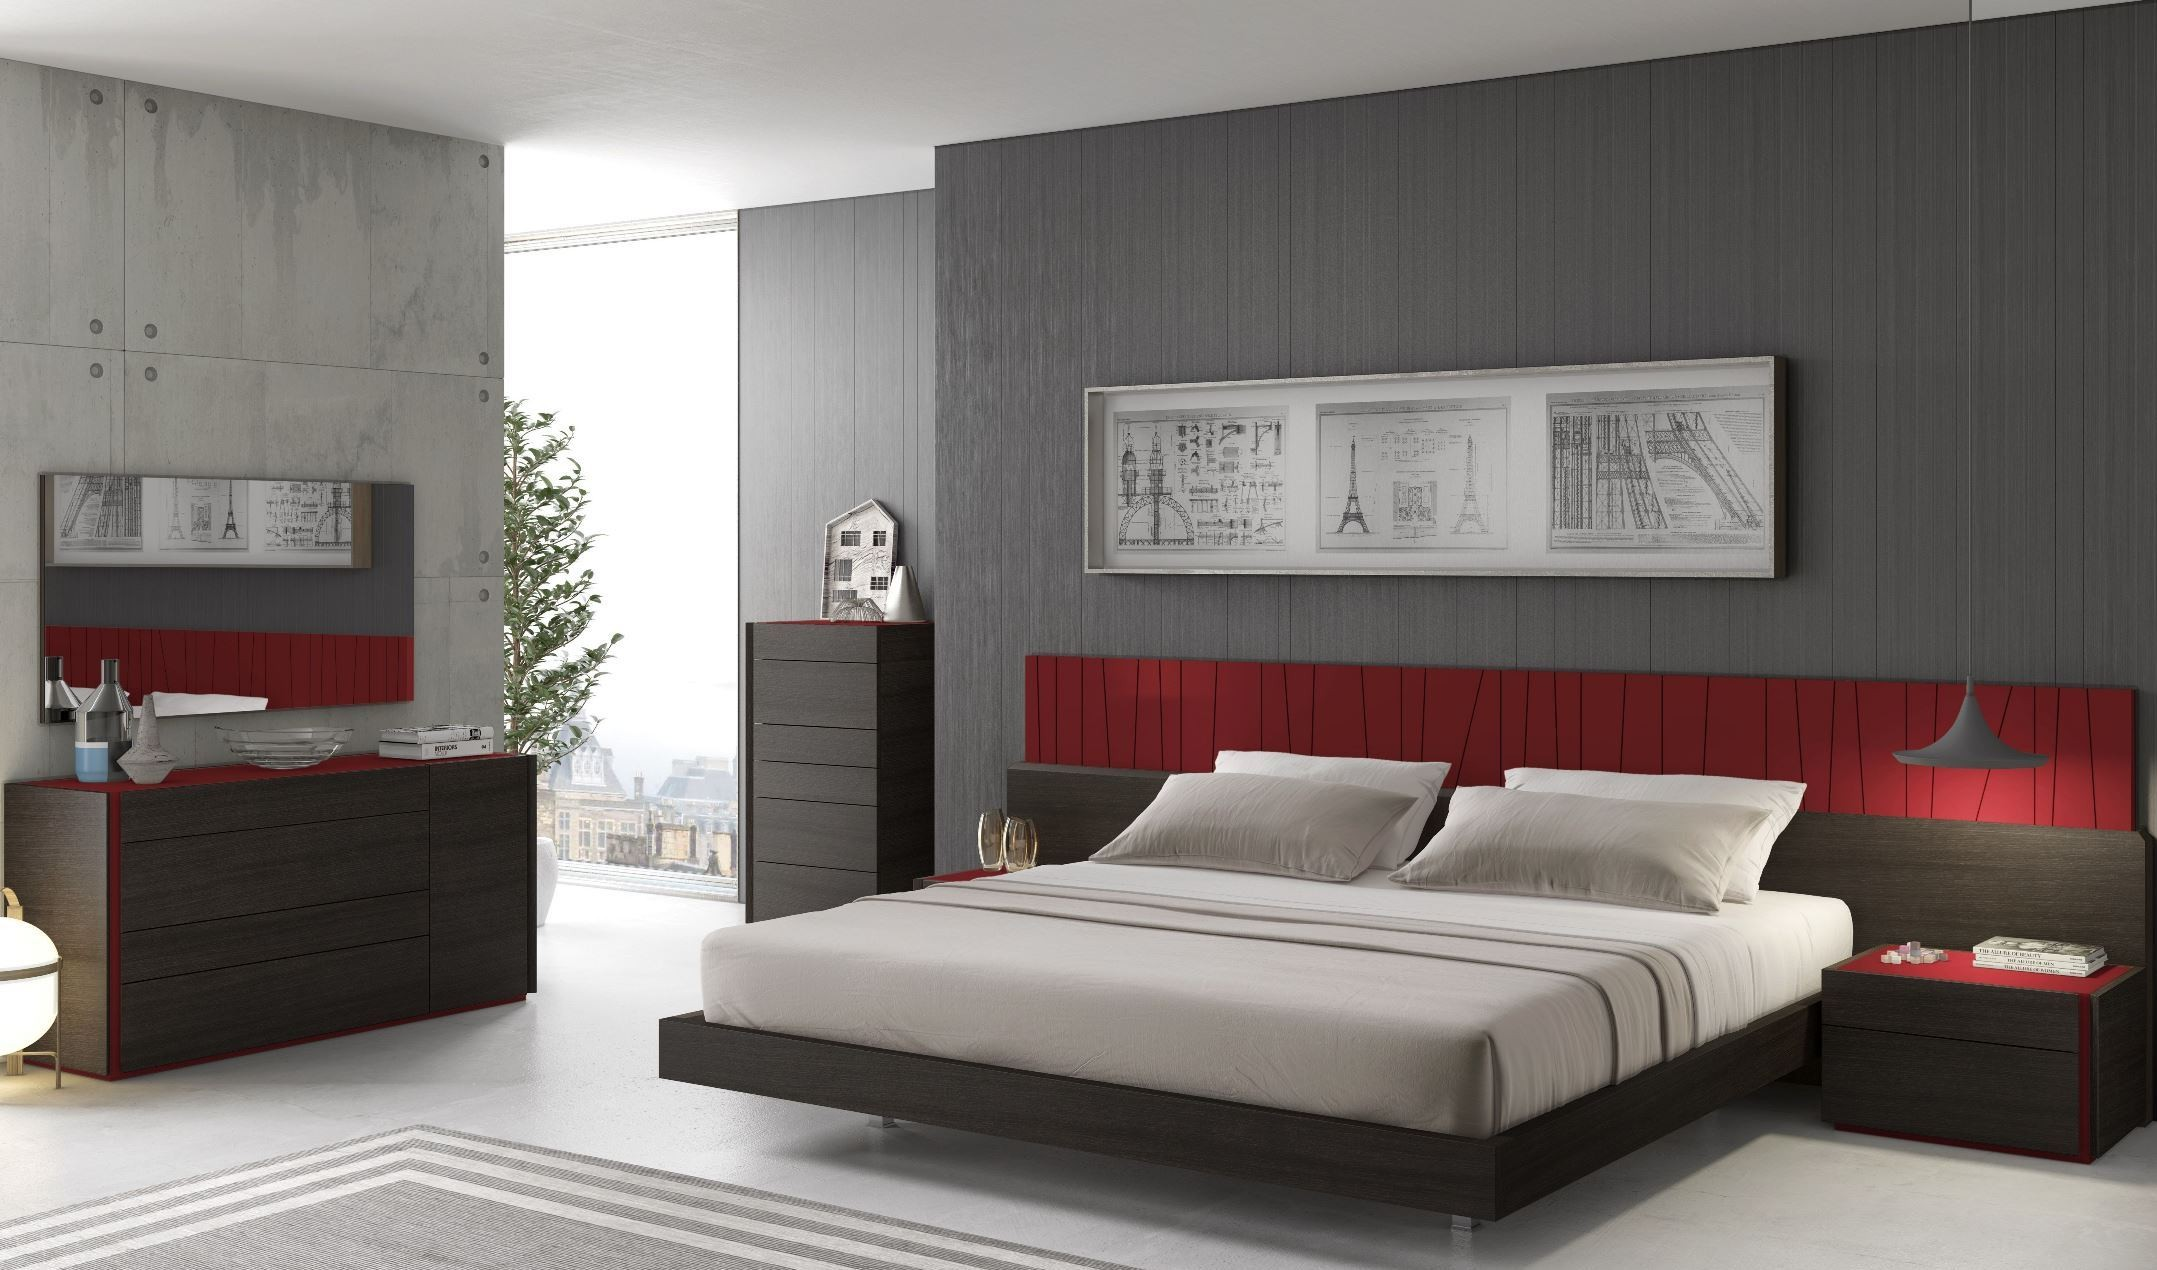 Outstanding Modern White Lacquer Bedroom Furniture